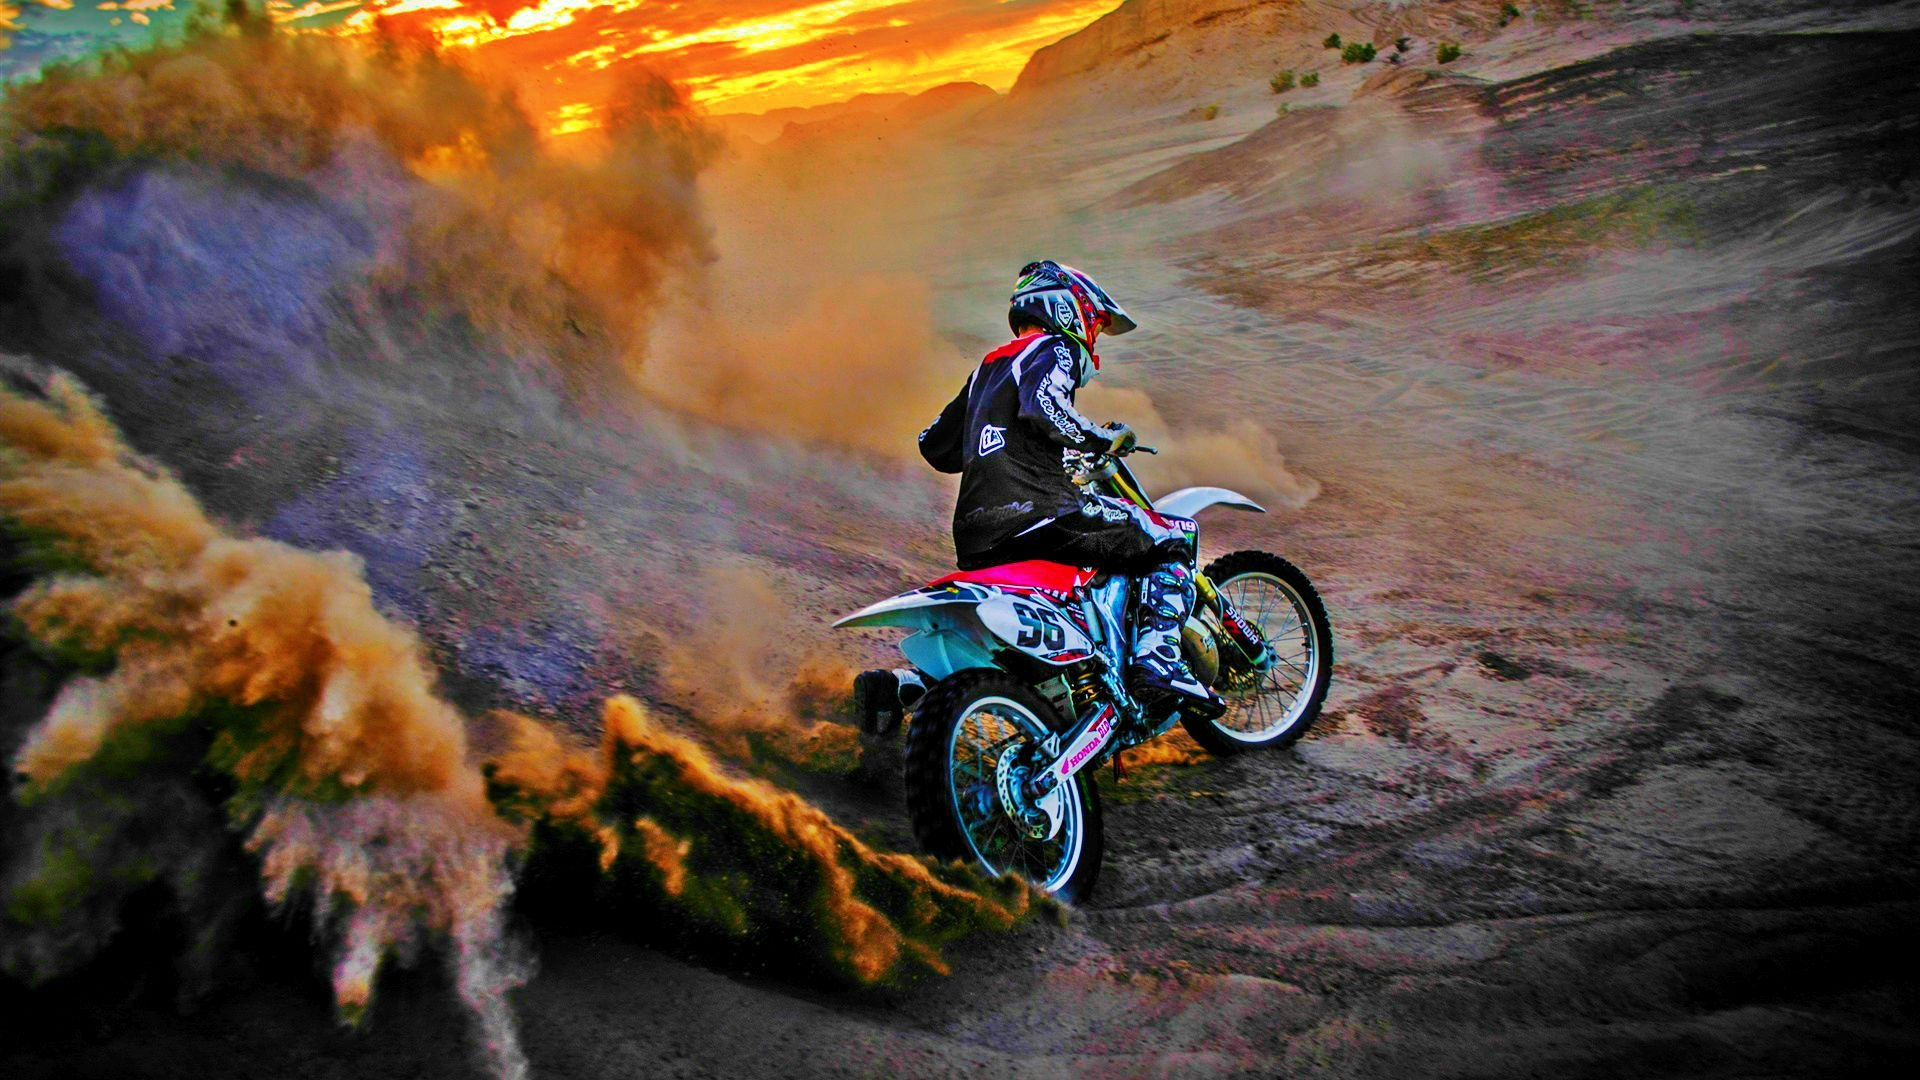 High Resolution Dirt Bike Motocross Wallpaper HD 10   SiWallpaperHD 1920x1080